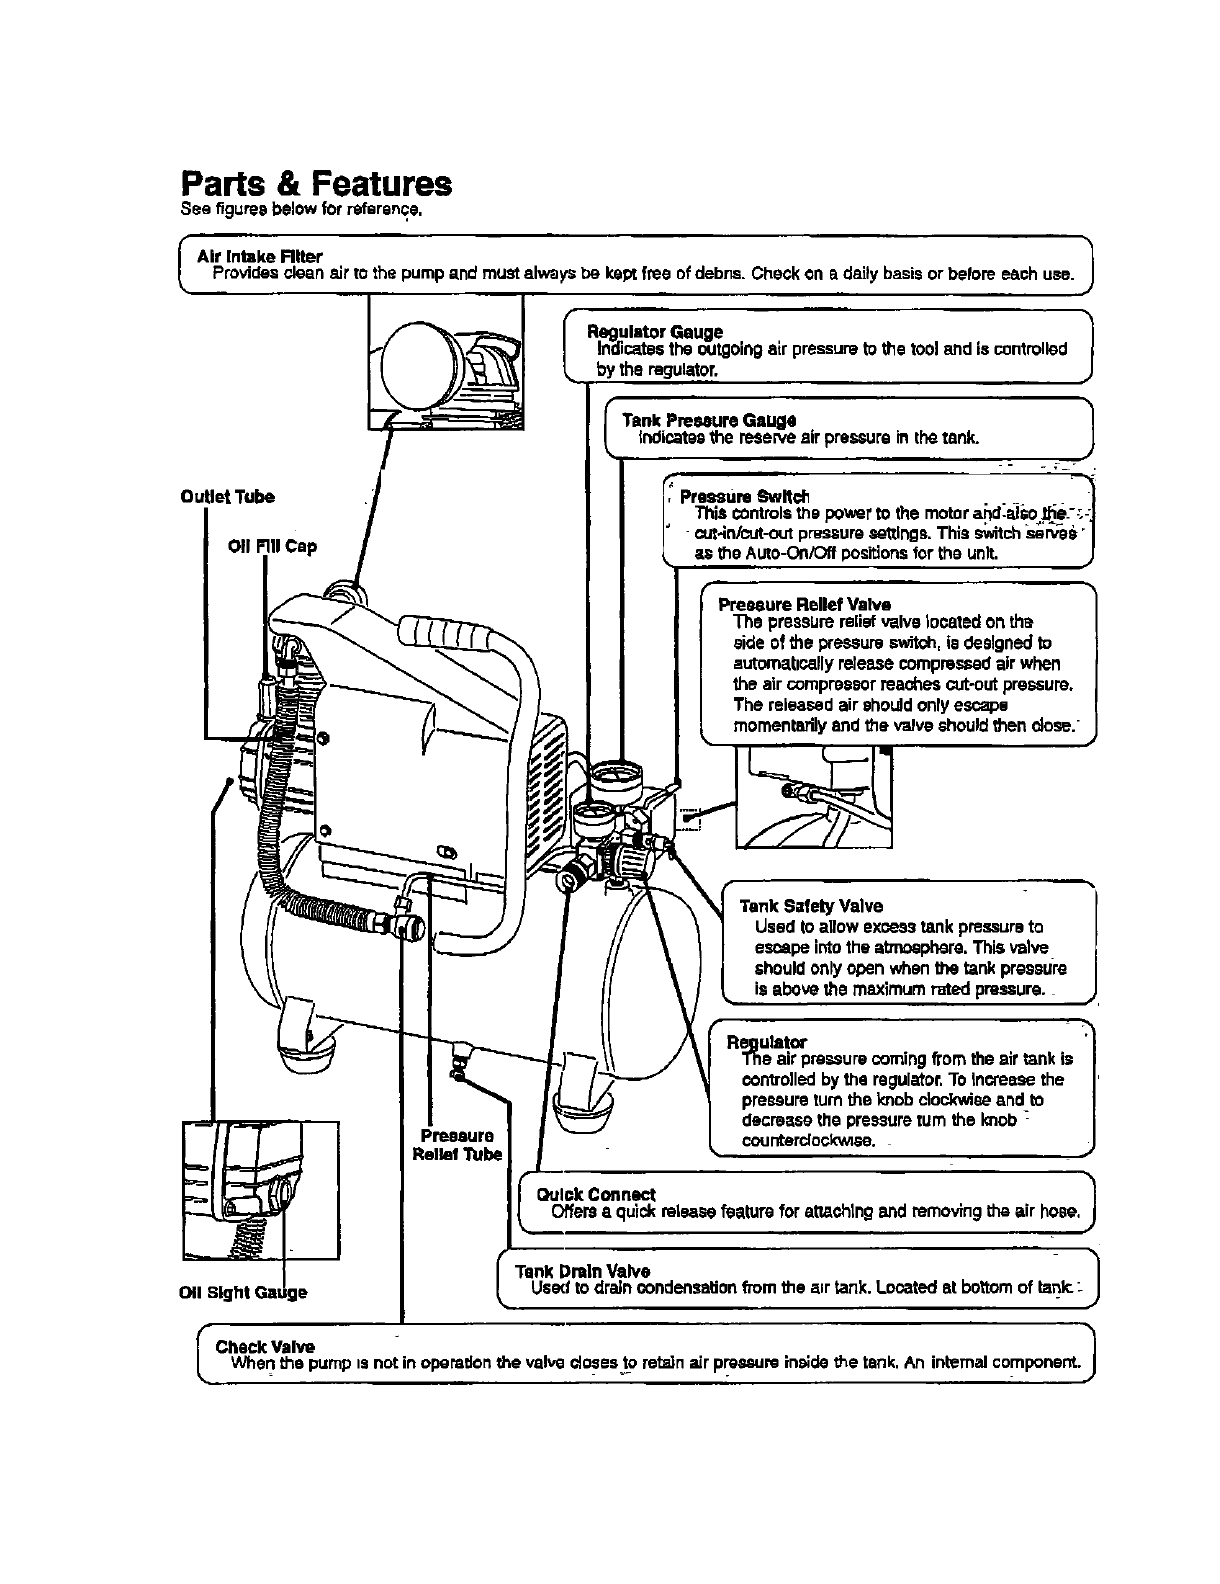 Air Compressor Pressure Switch Diagram To The Pressure Switch As